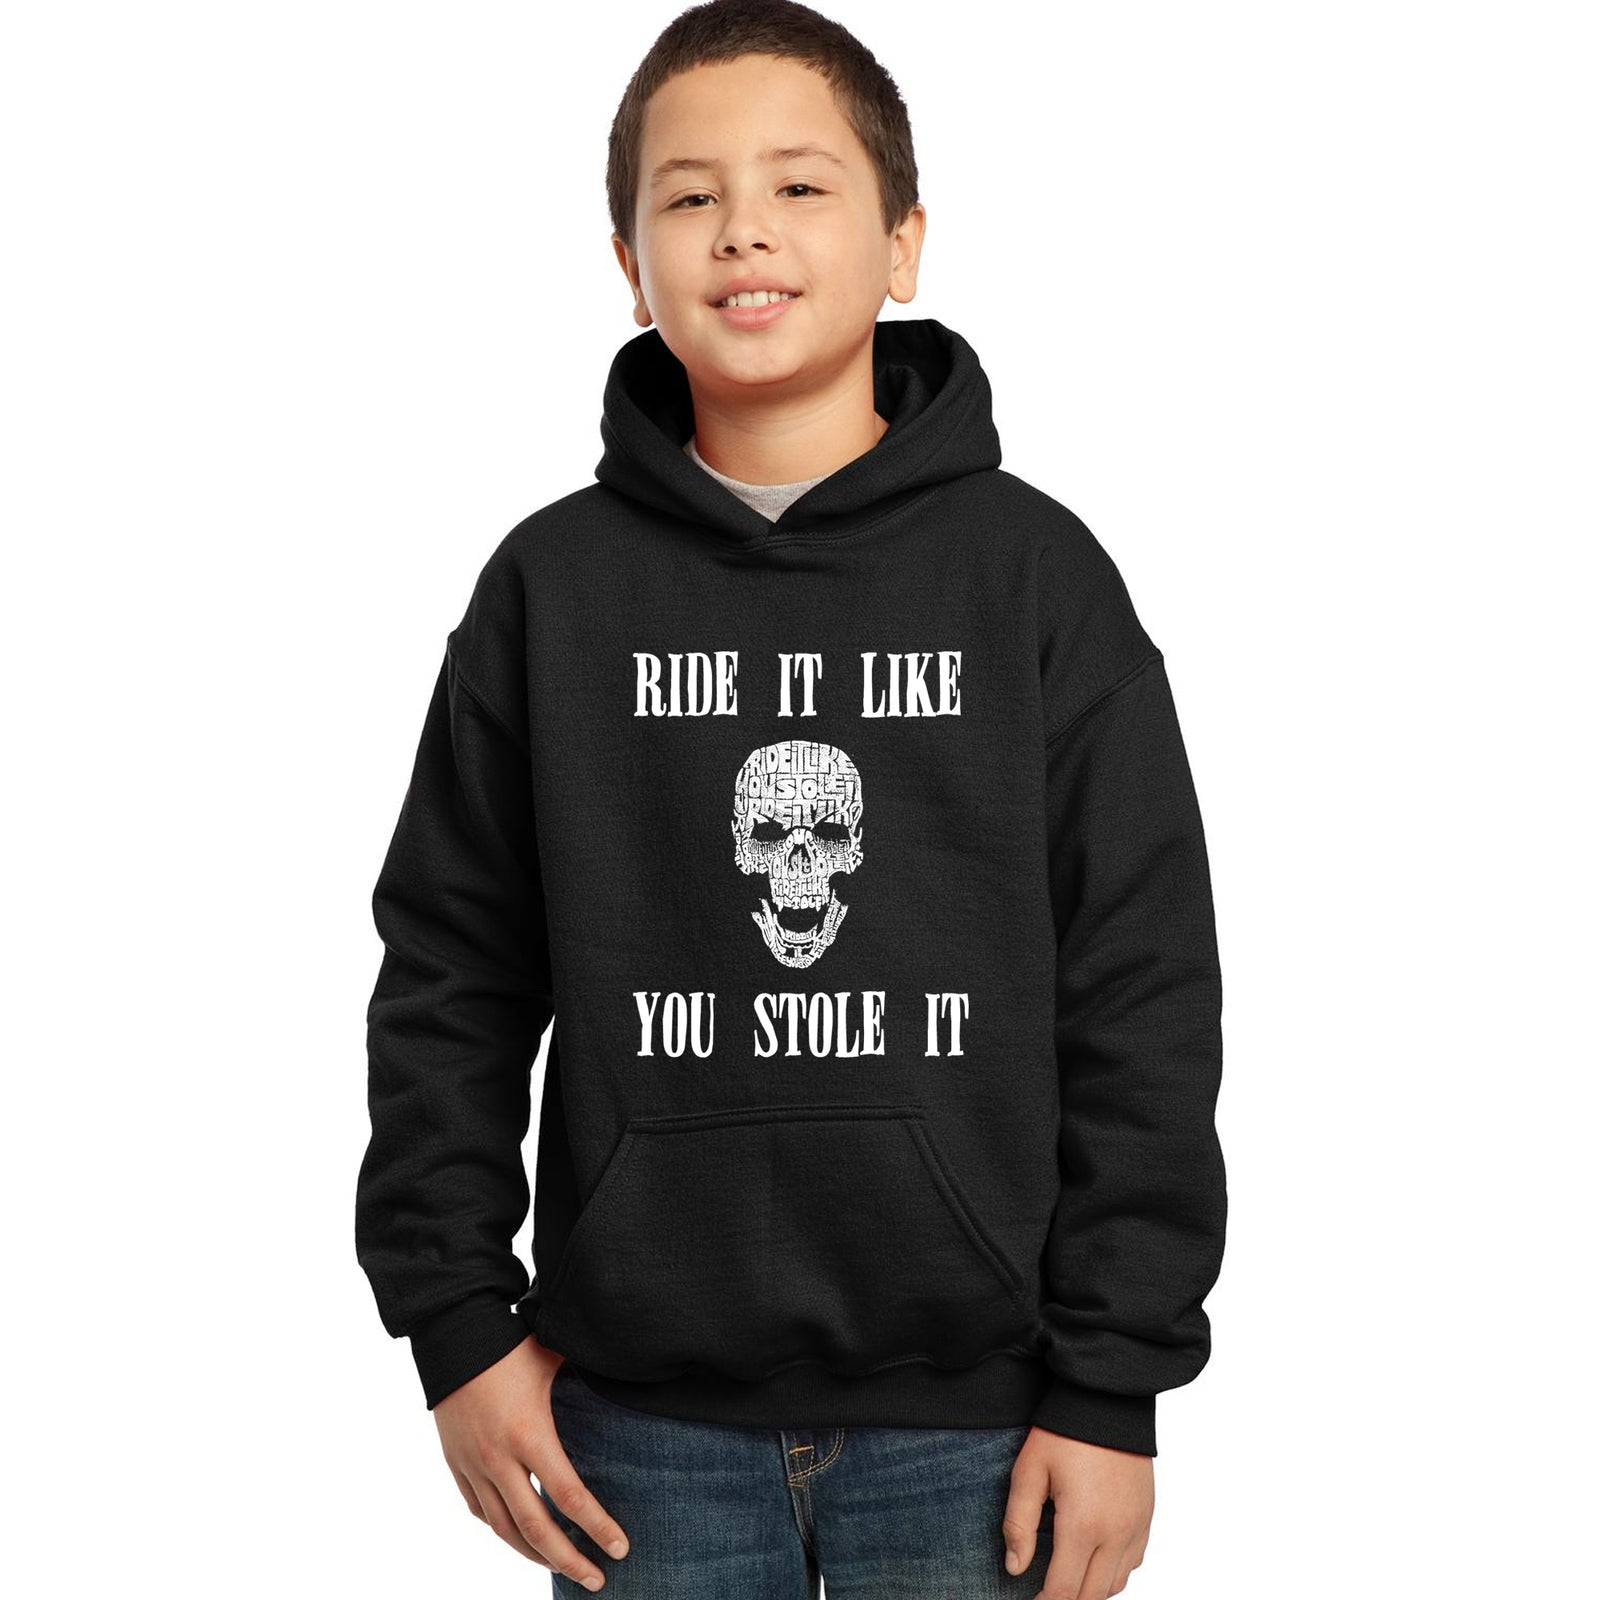 Boy's Word Art Hooded Sweatshirt - Ride It Like You Stole It